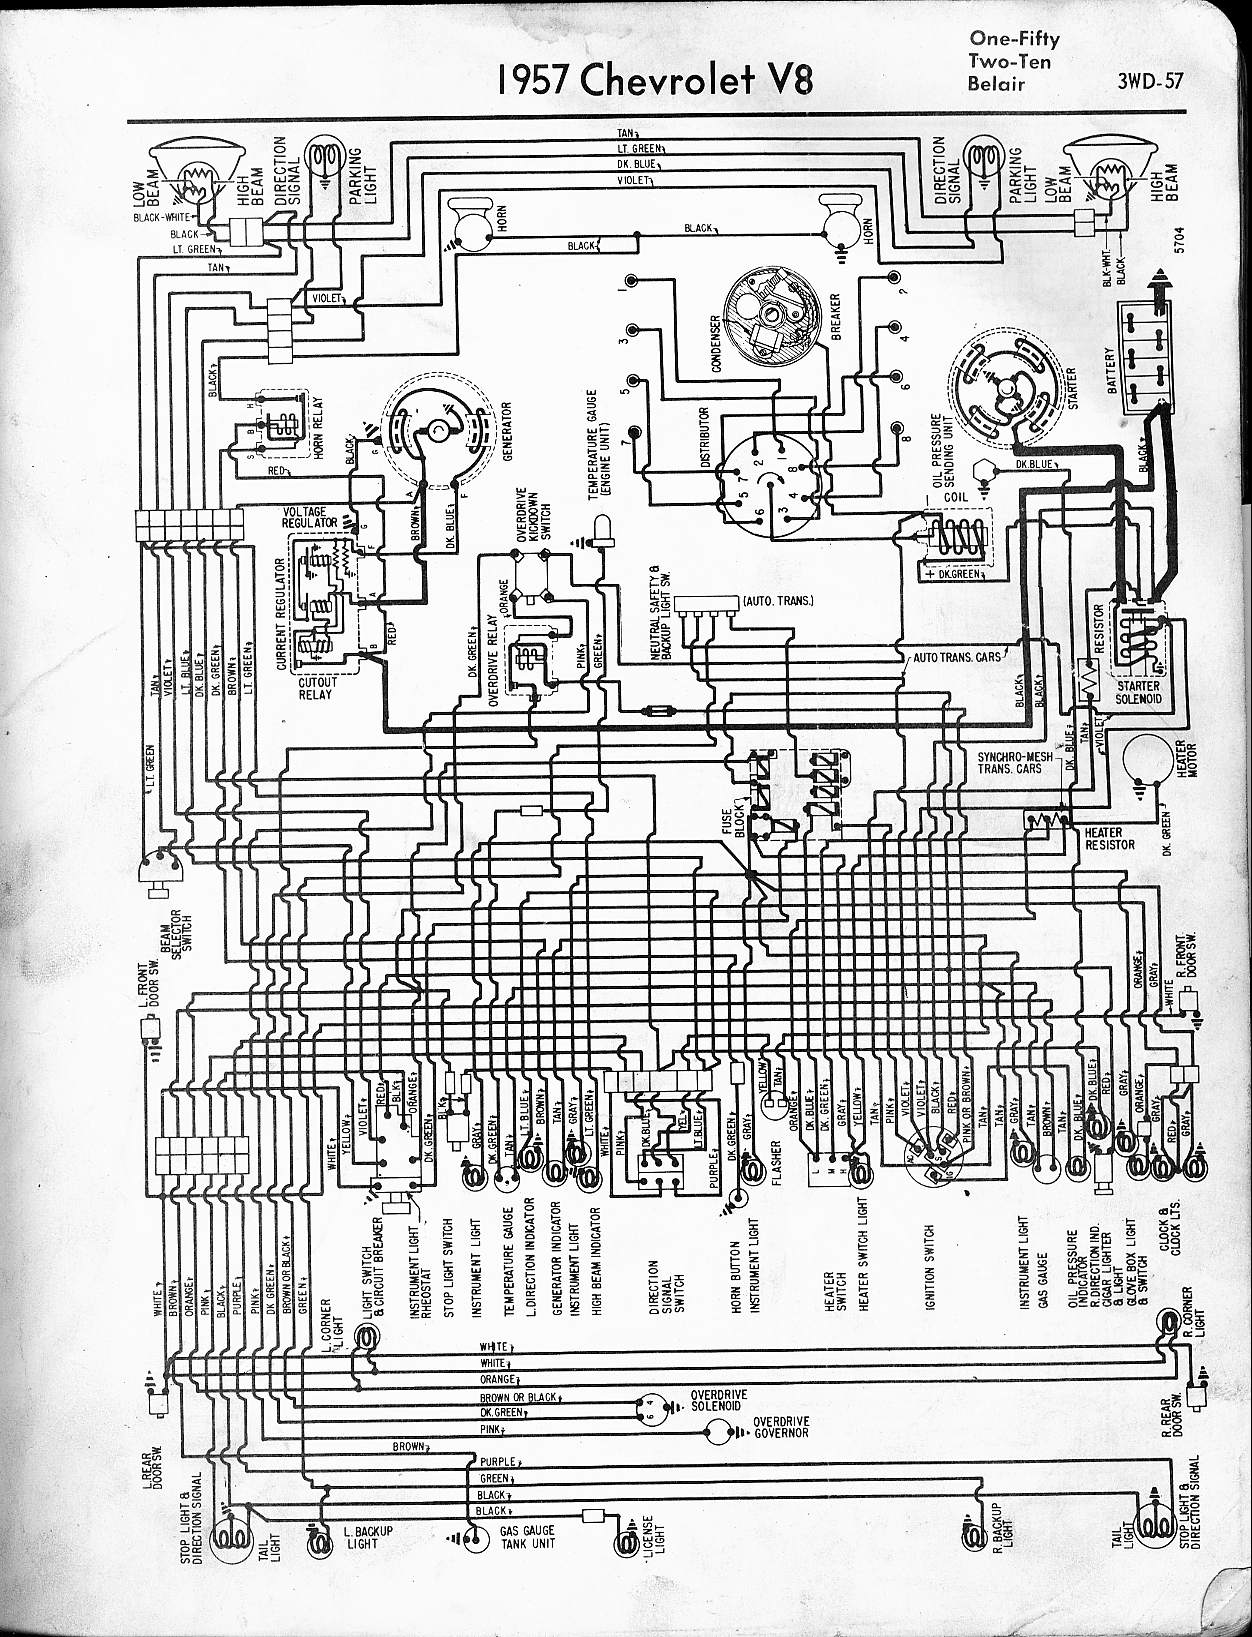 MWireChev57_3WD 057 57 65 chevy wiring diagrams 89 chevy truck ignition switch wiring diagram at honlapkeszites.co